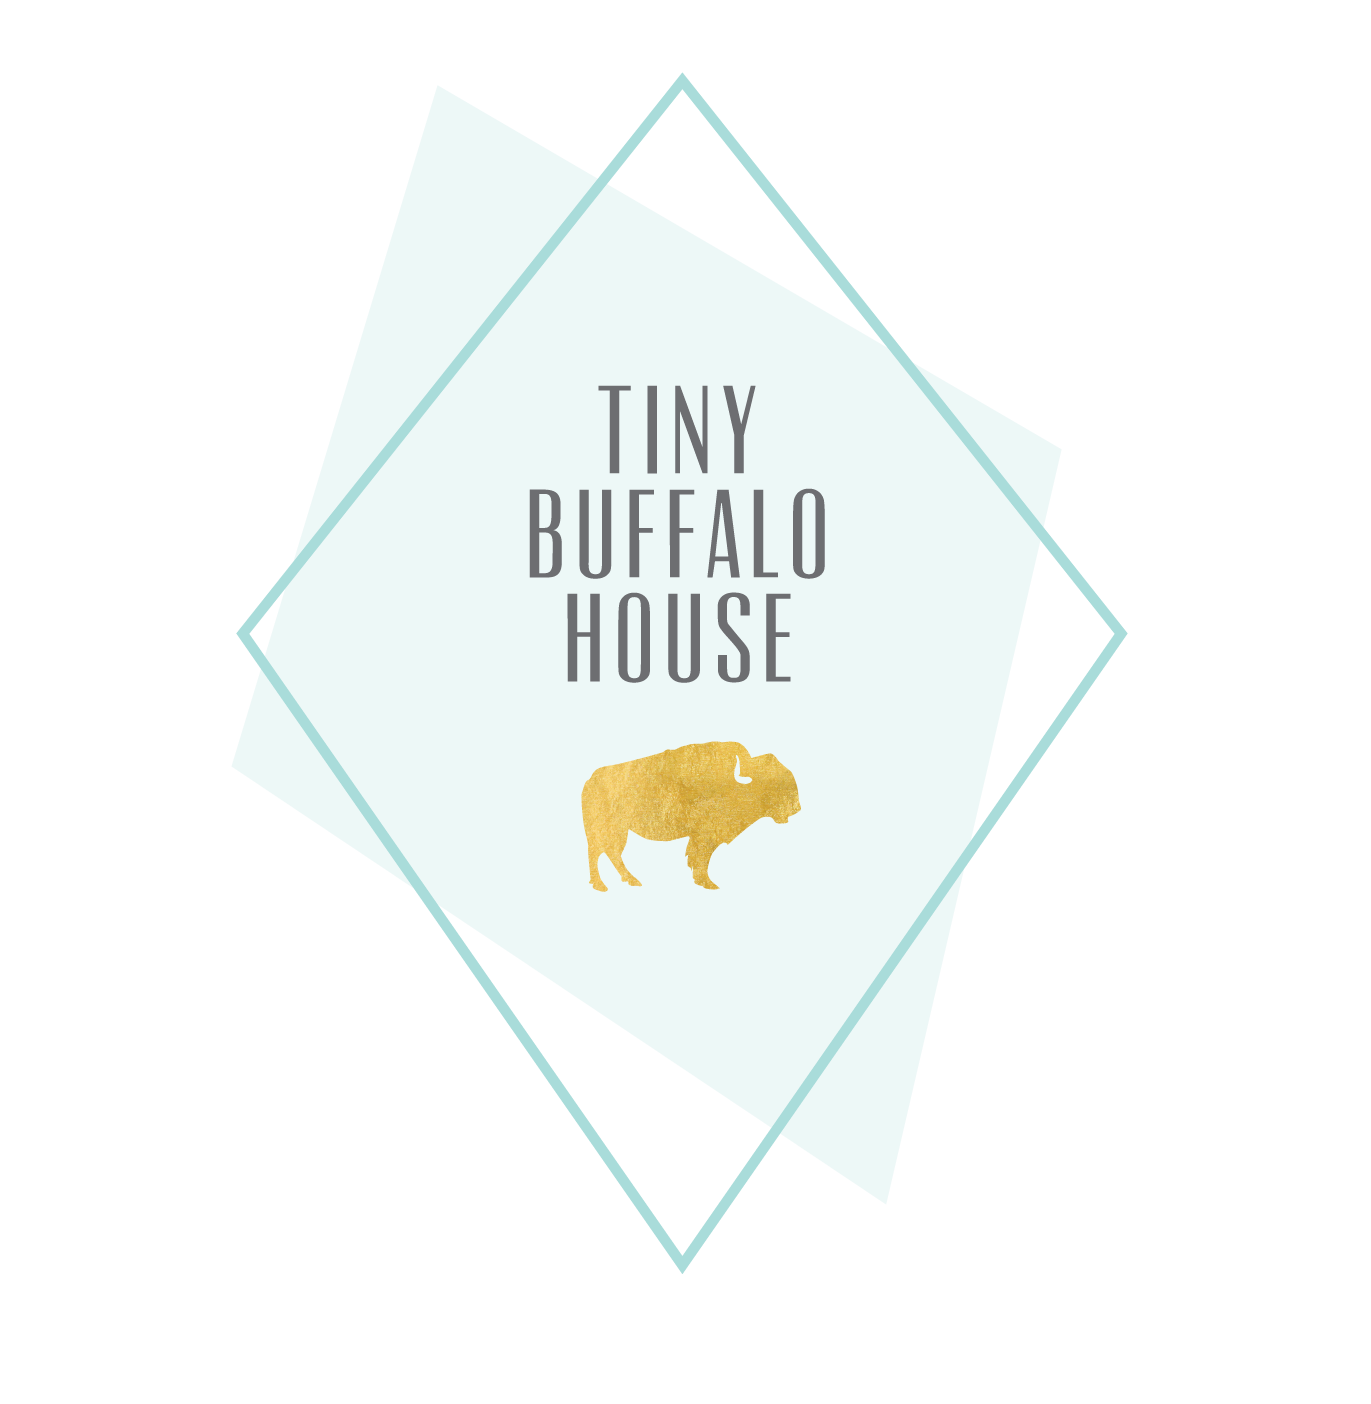 Tiny Buffalo House